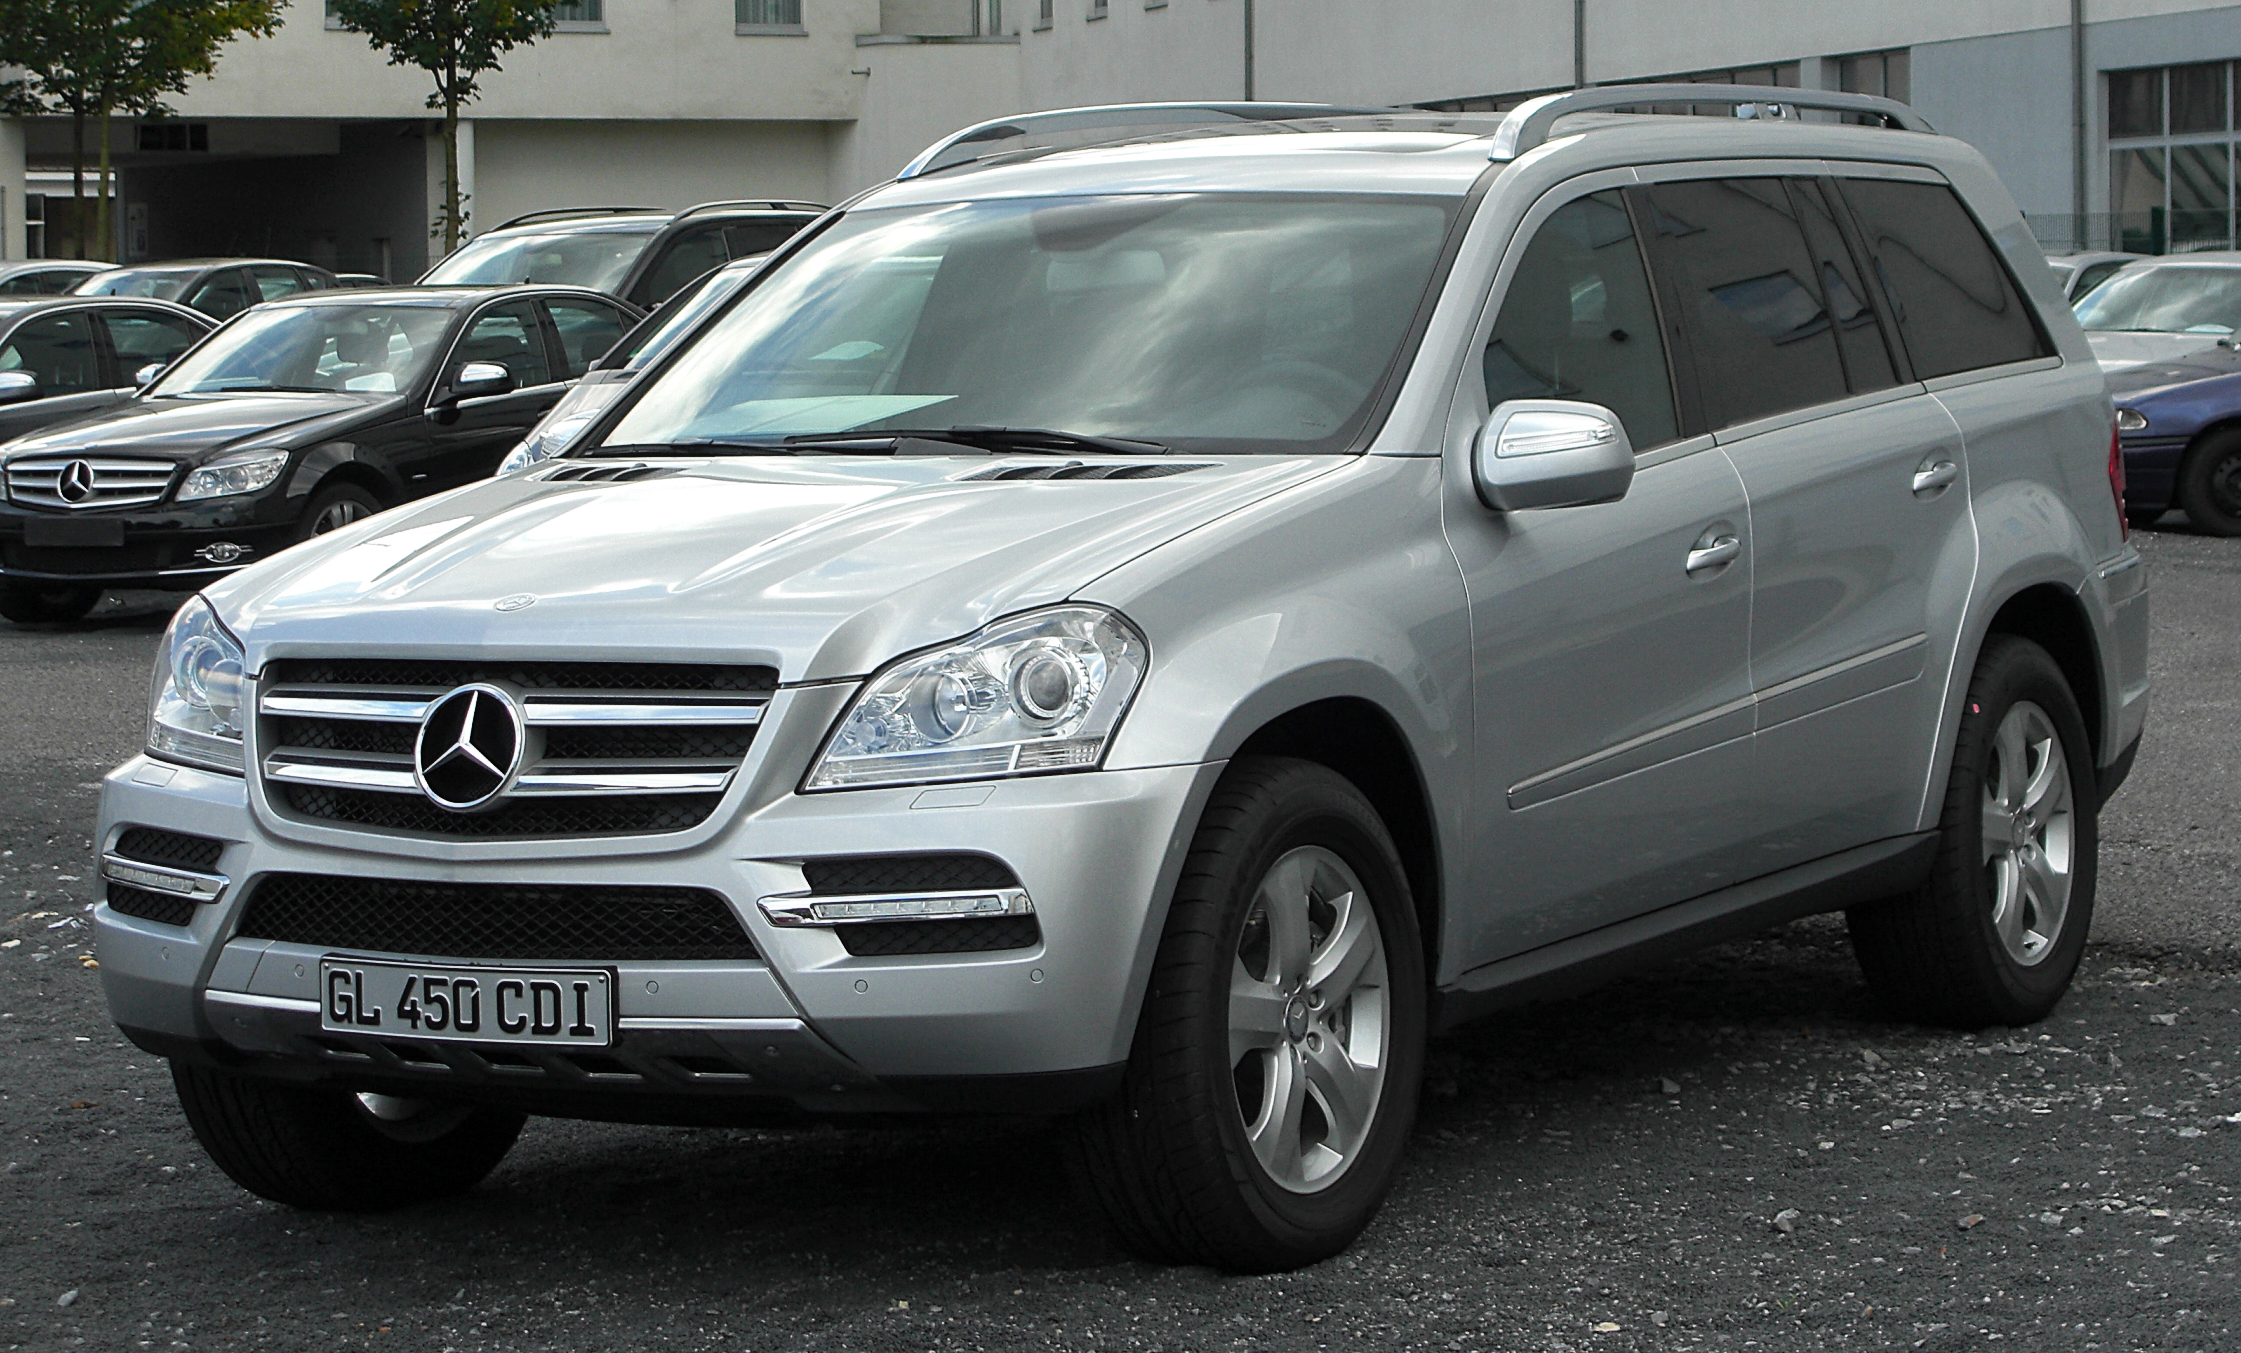 sold autohausnaples youtube sale naples gl for watch mercedes of by com benz autohaus